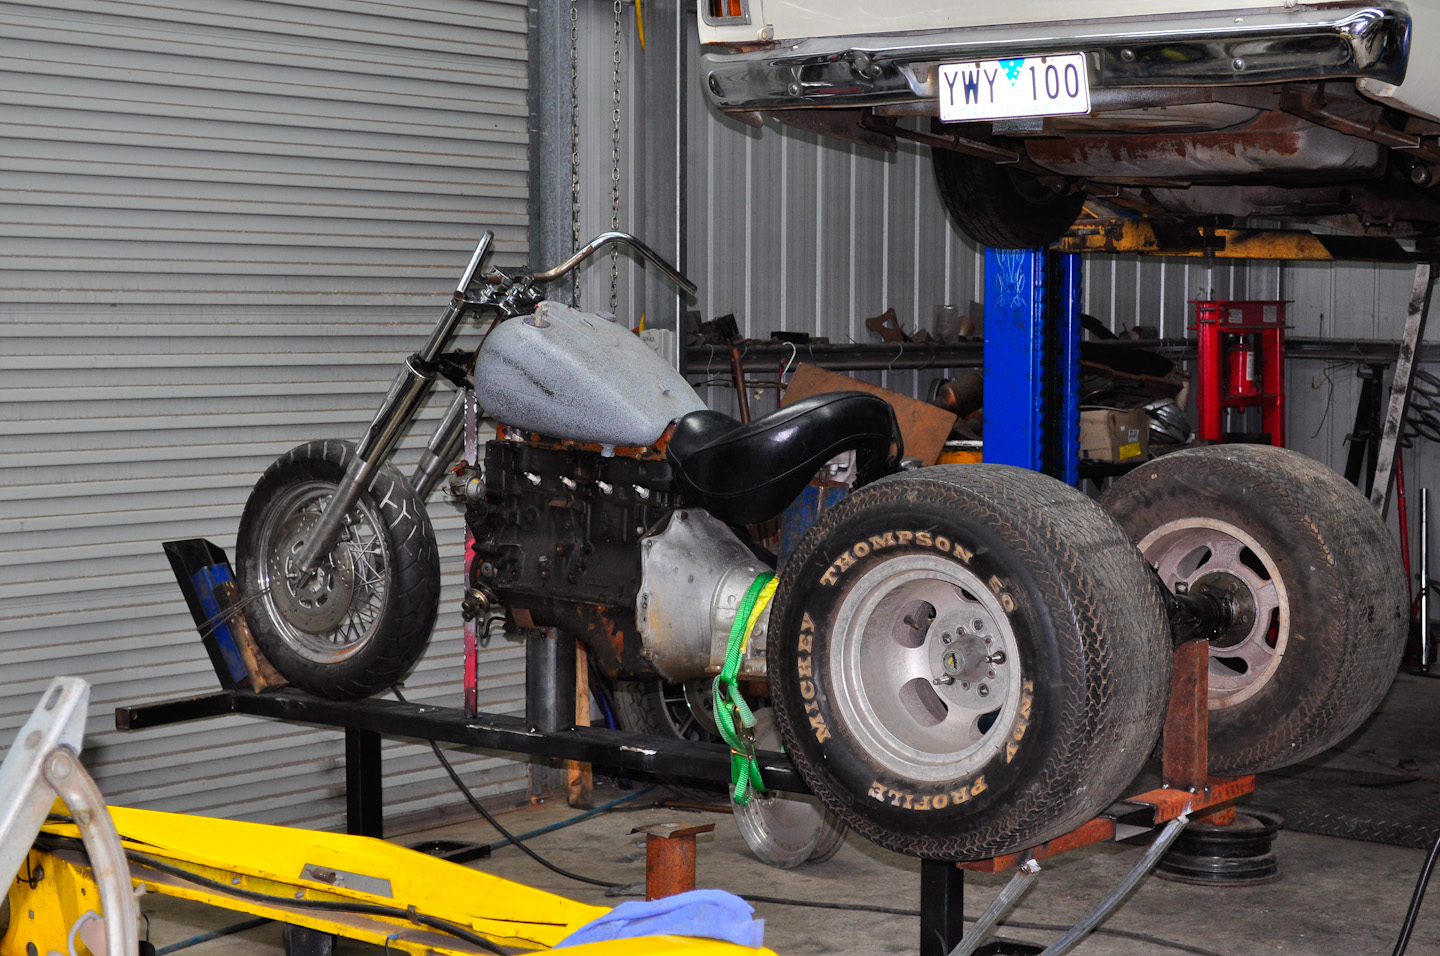 Hodgey's Hot Rods and Customs: Dad's Trike